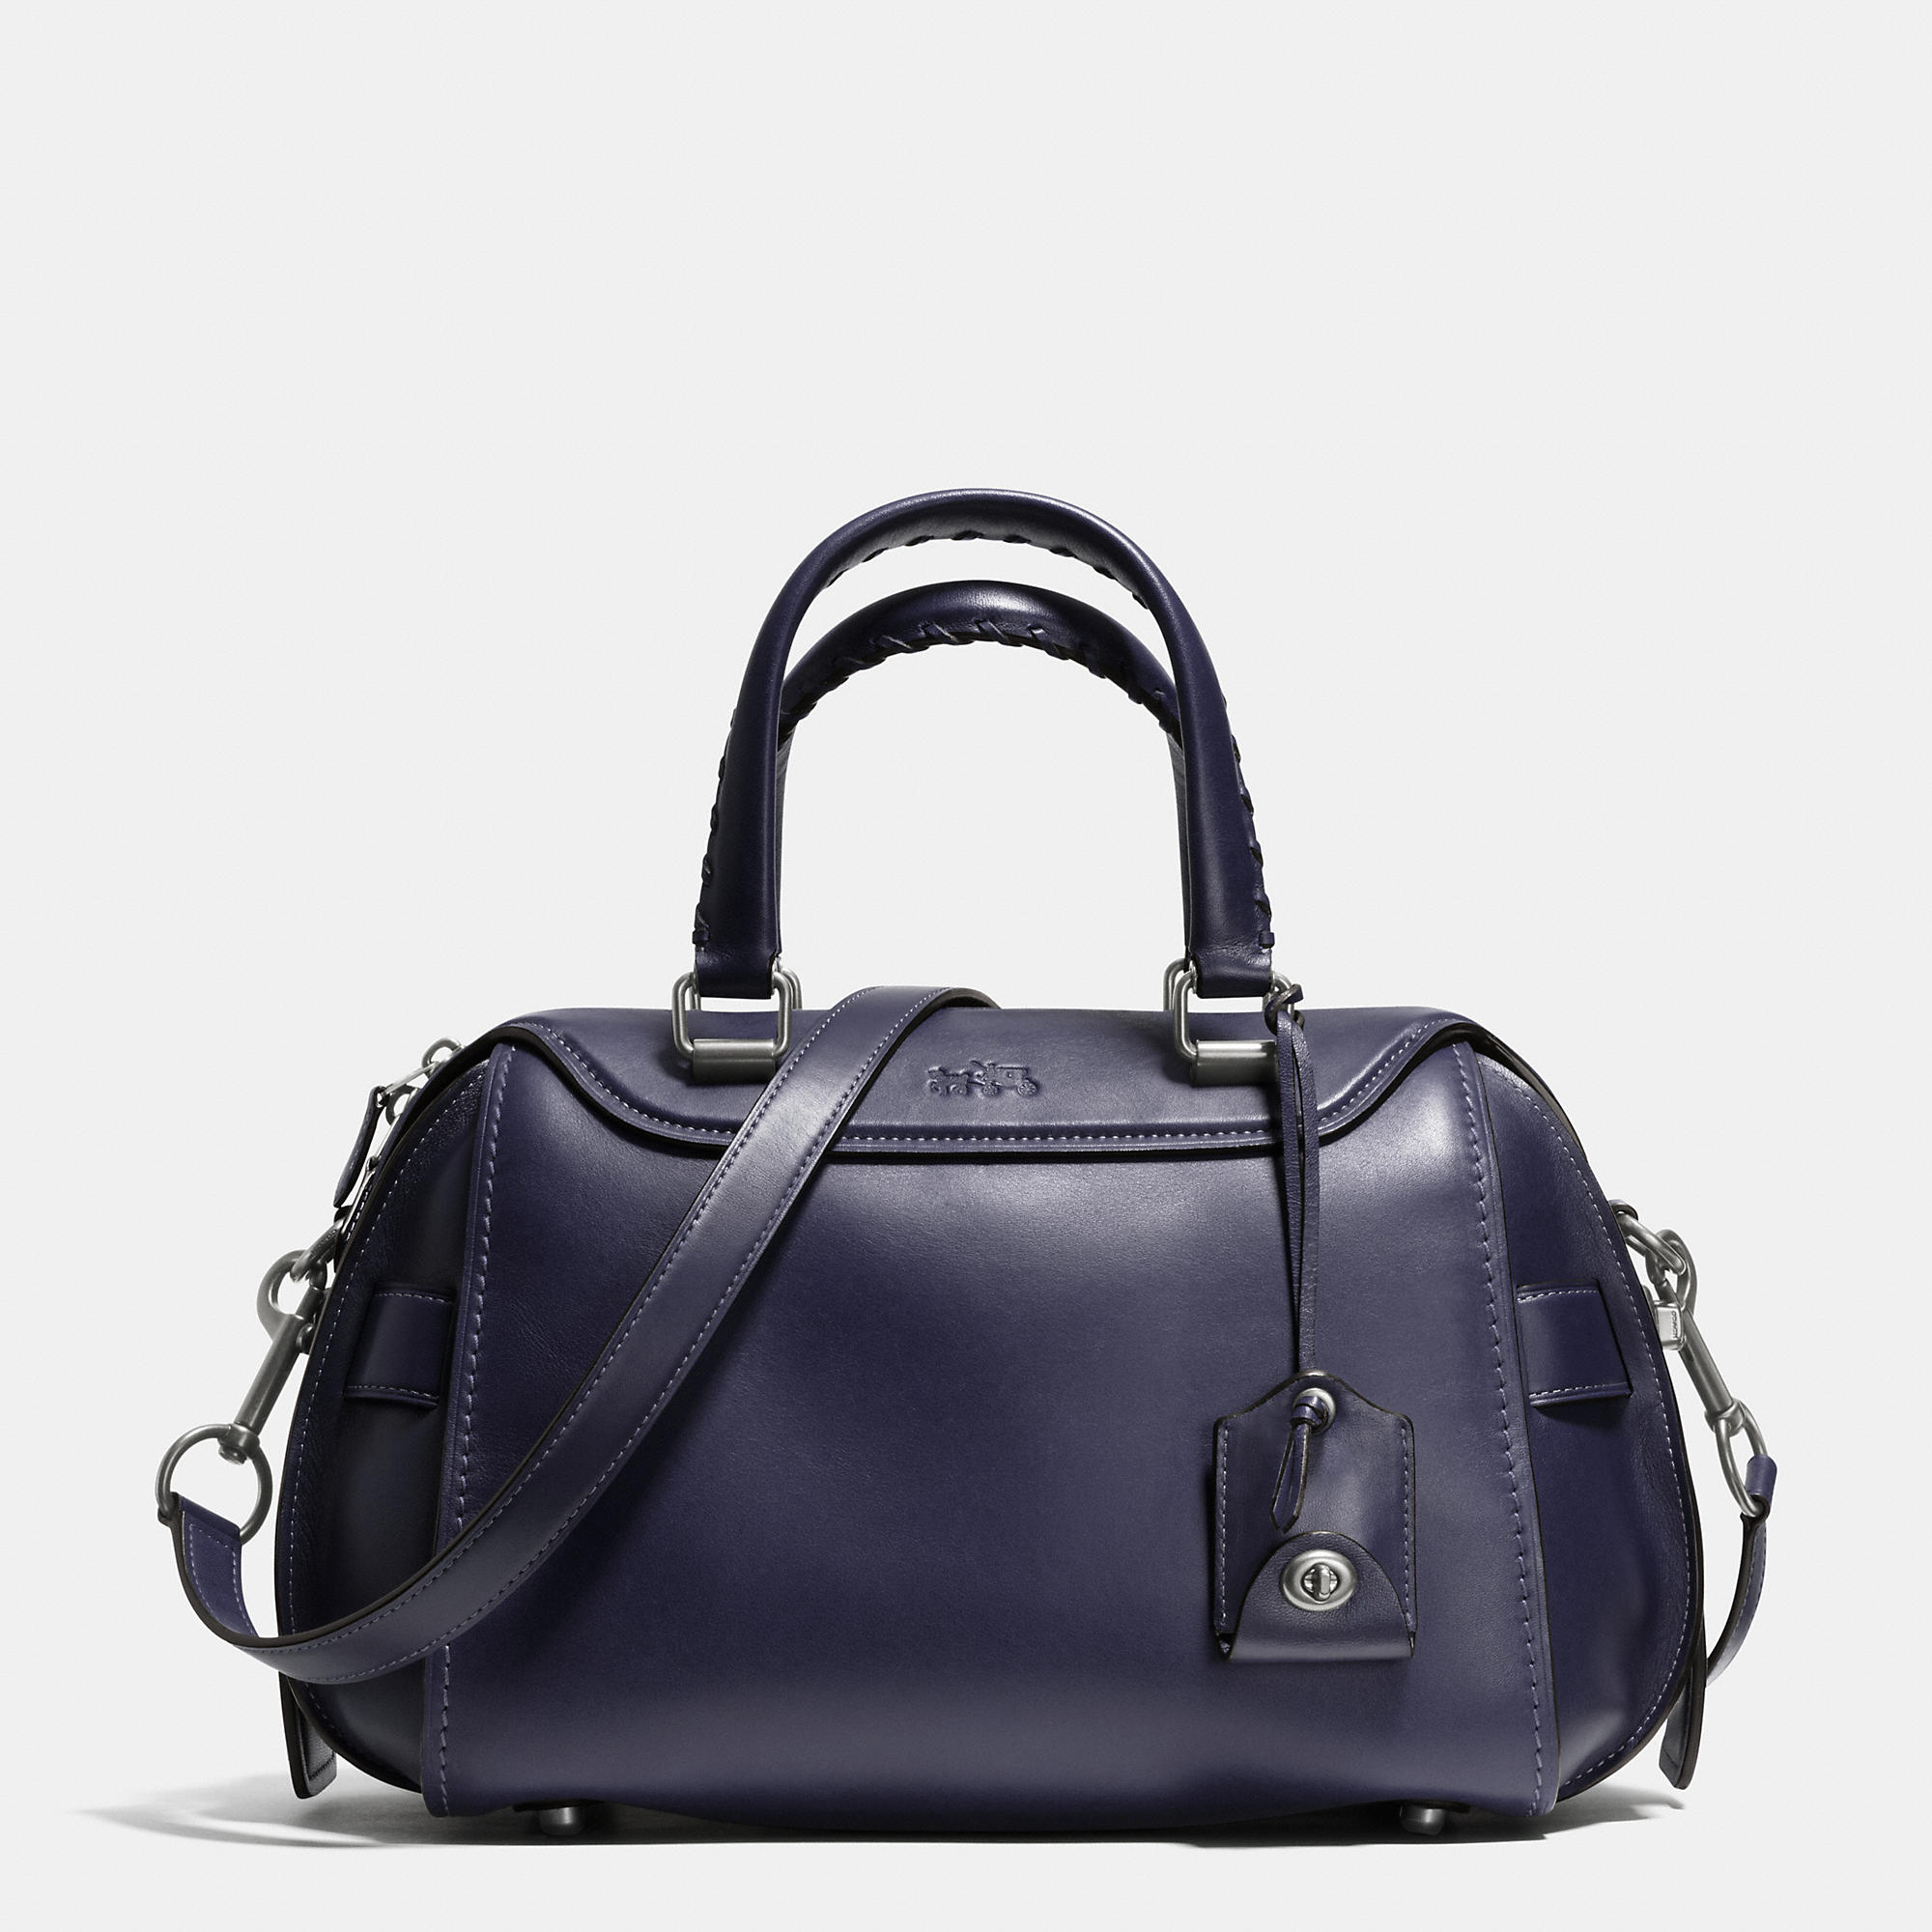 Coach Ace Satchel In Glovetanned Leather